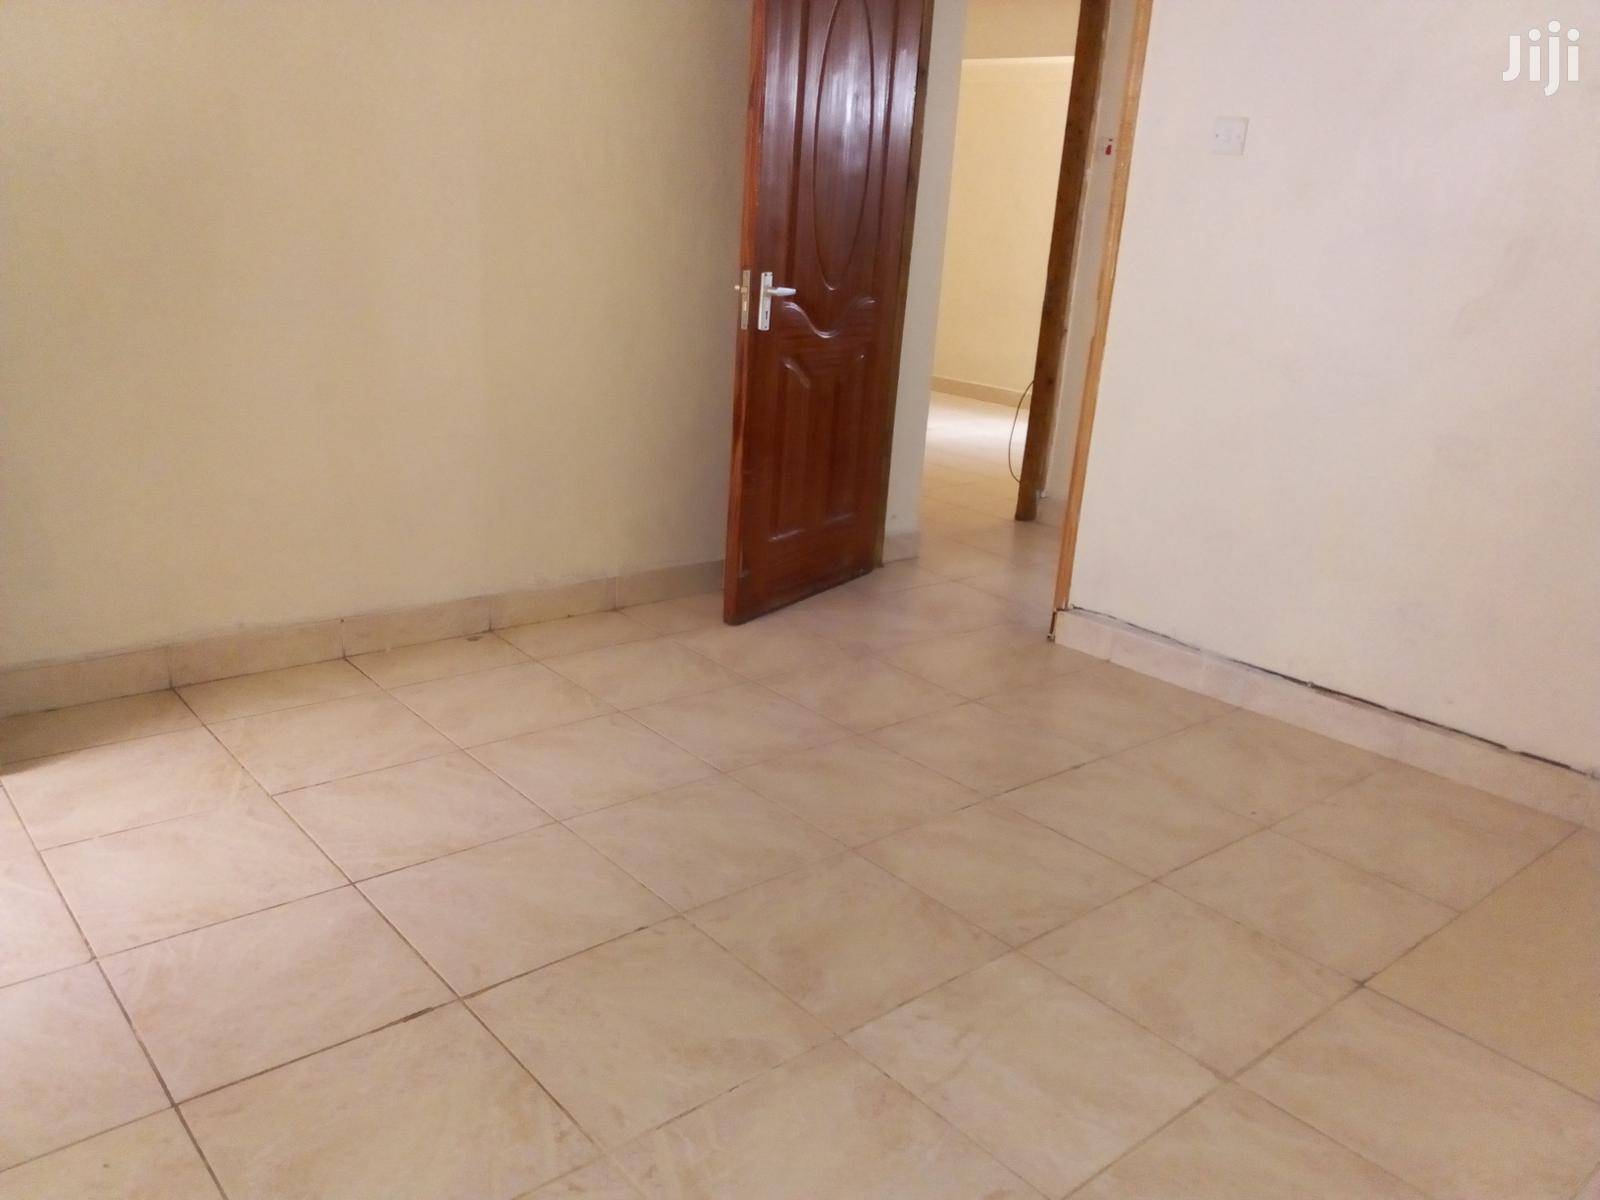 Letting One Bedroom Imara Daima